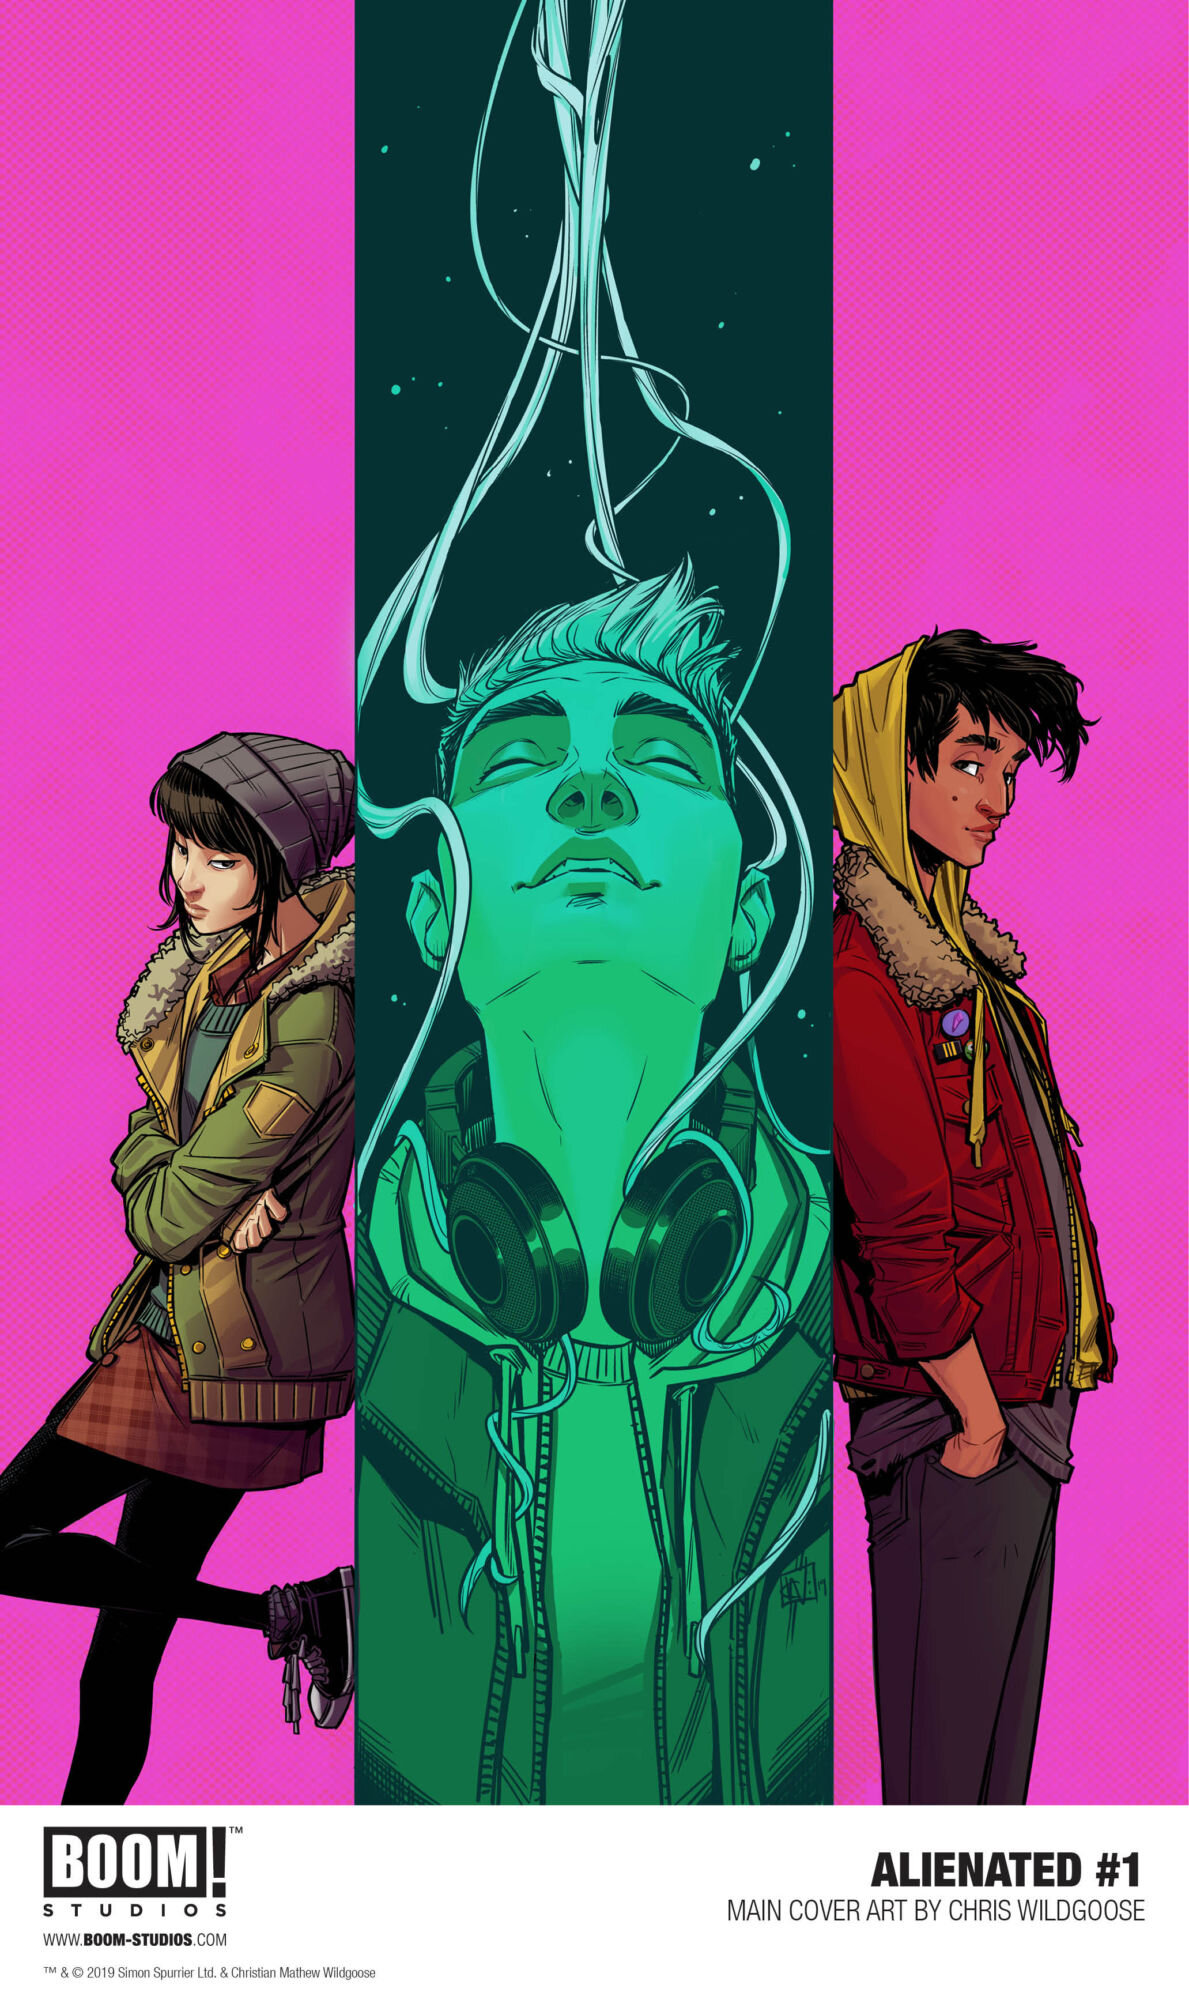 Main cover for Issue #1, art by Christian Wildgoose